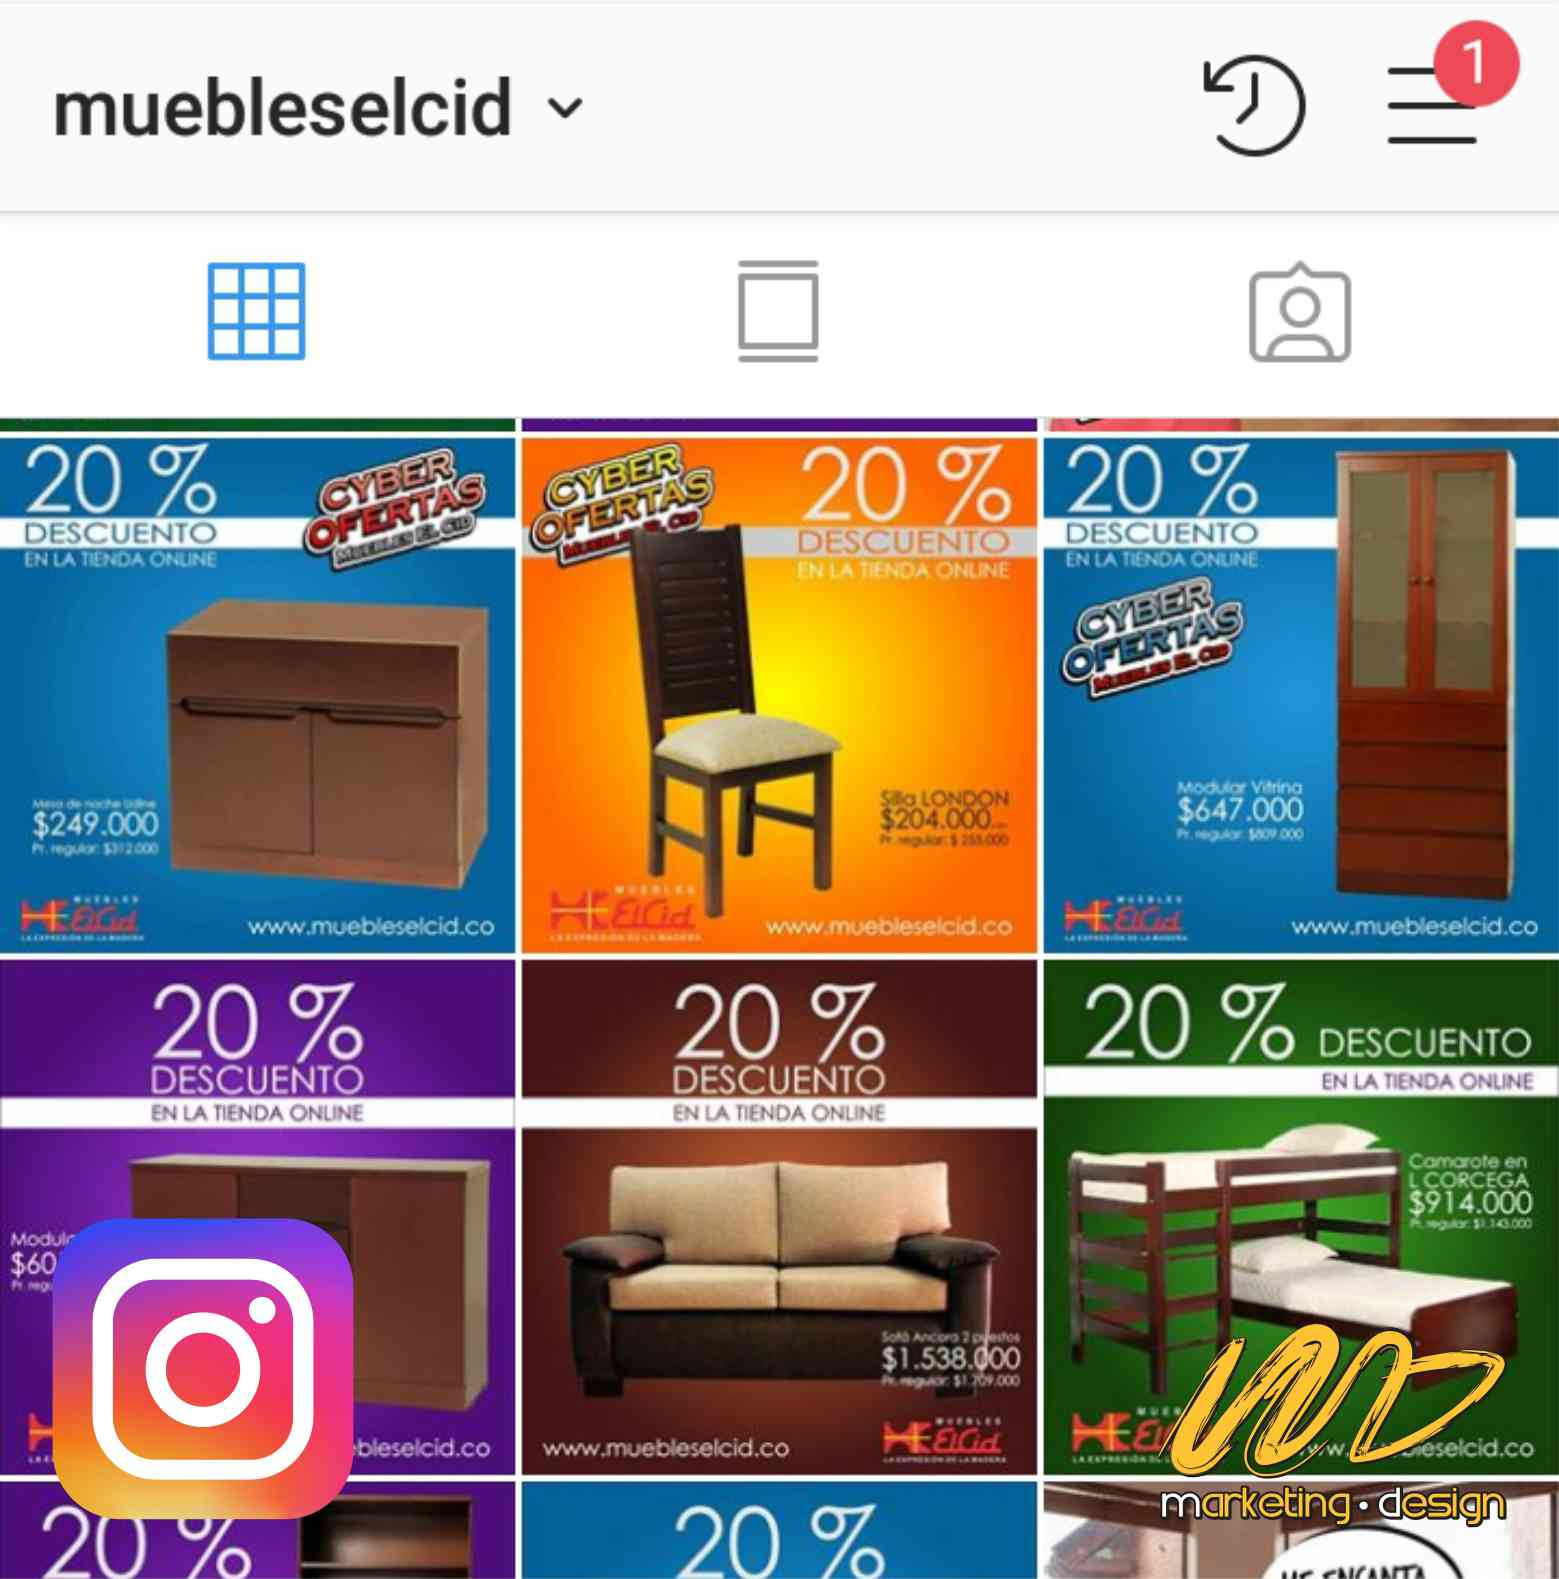 Clientes Instagram Marketing Design 1902